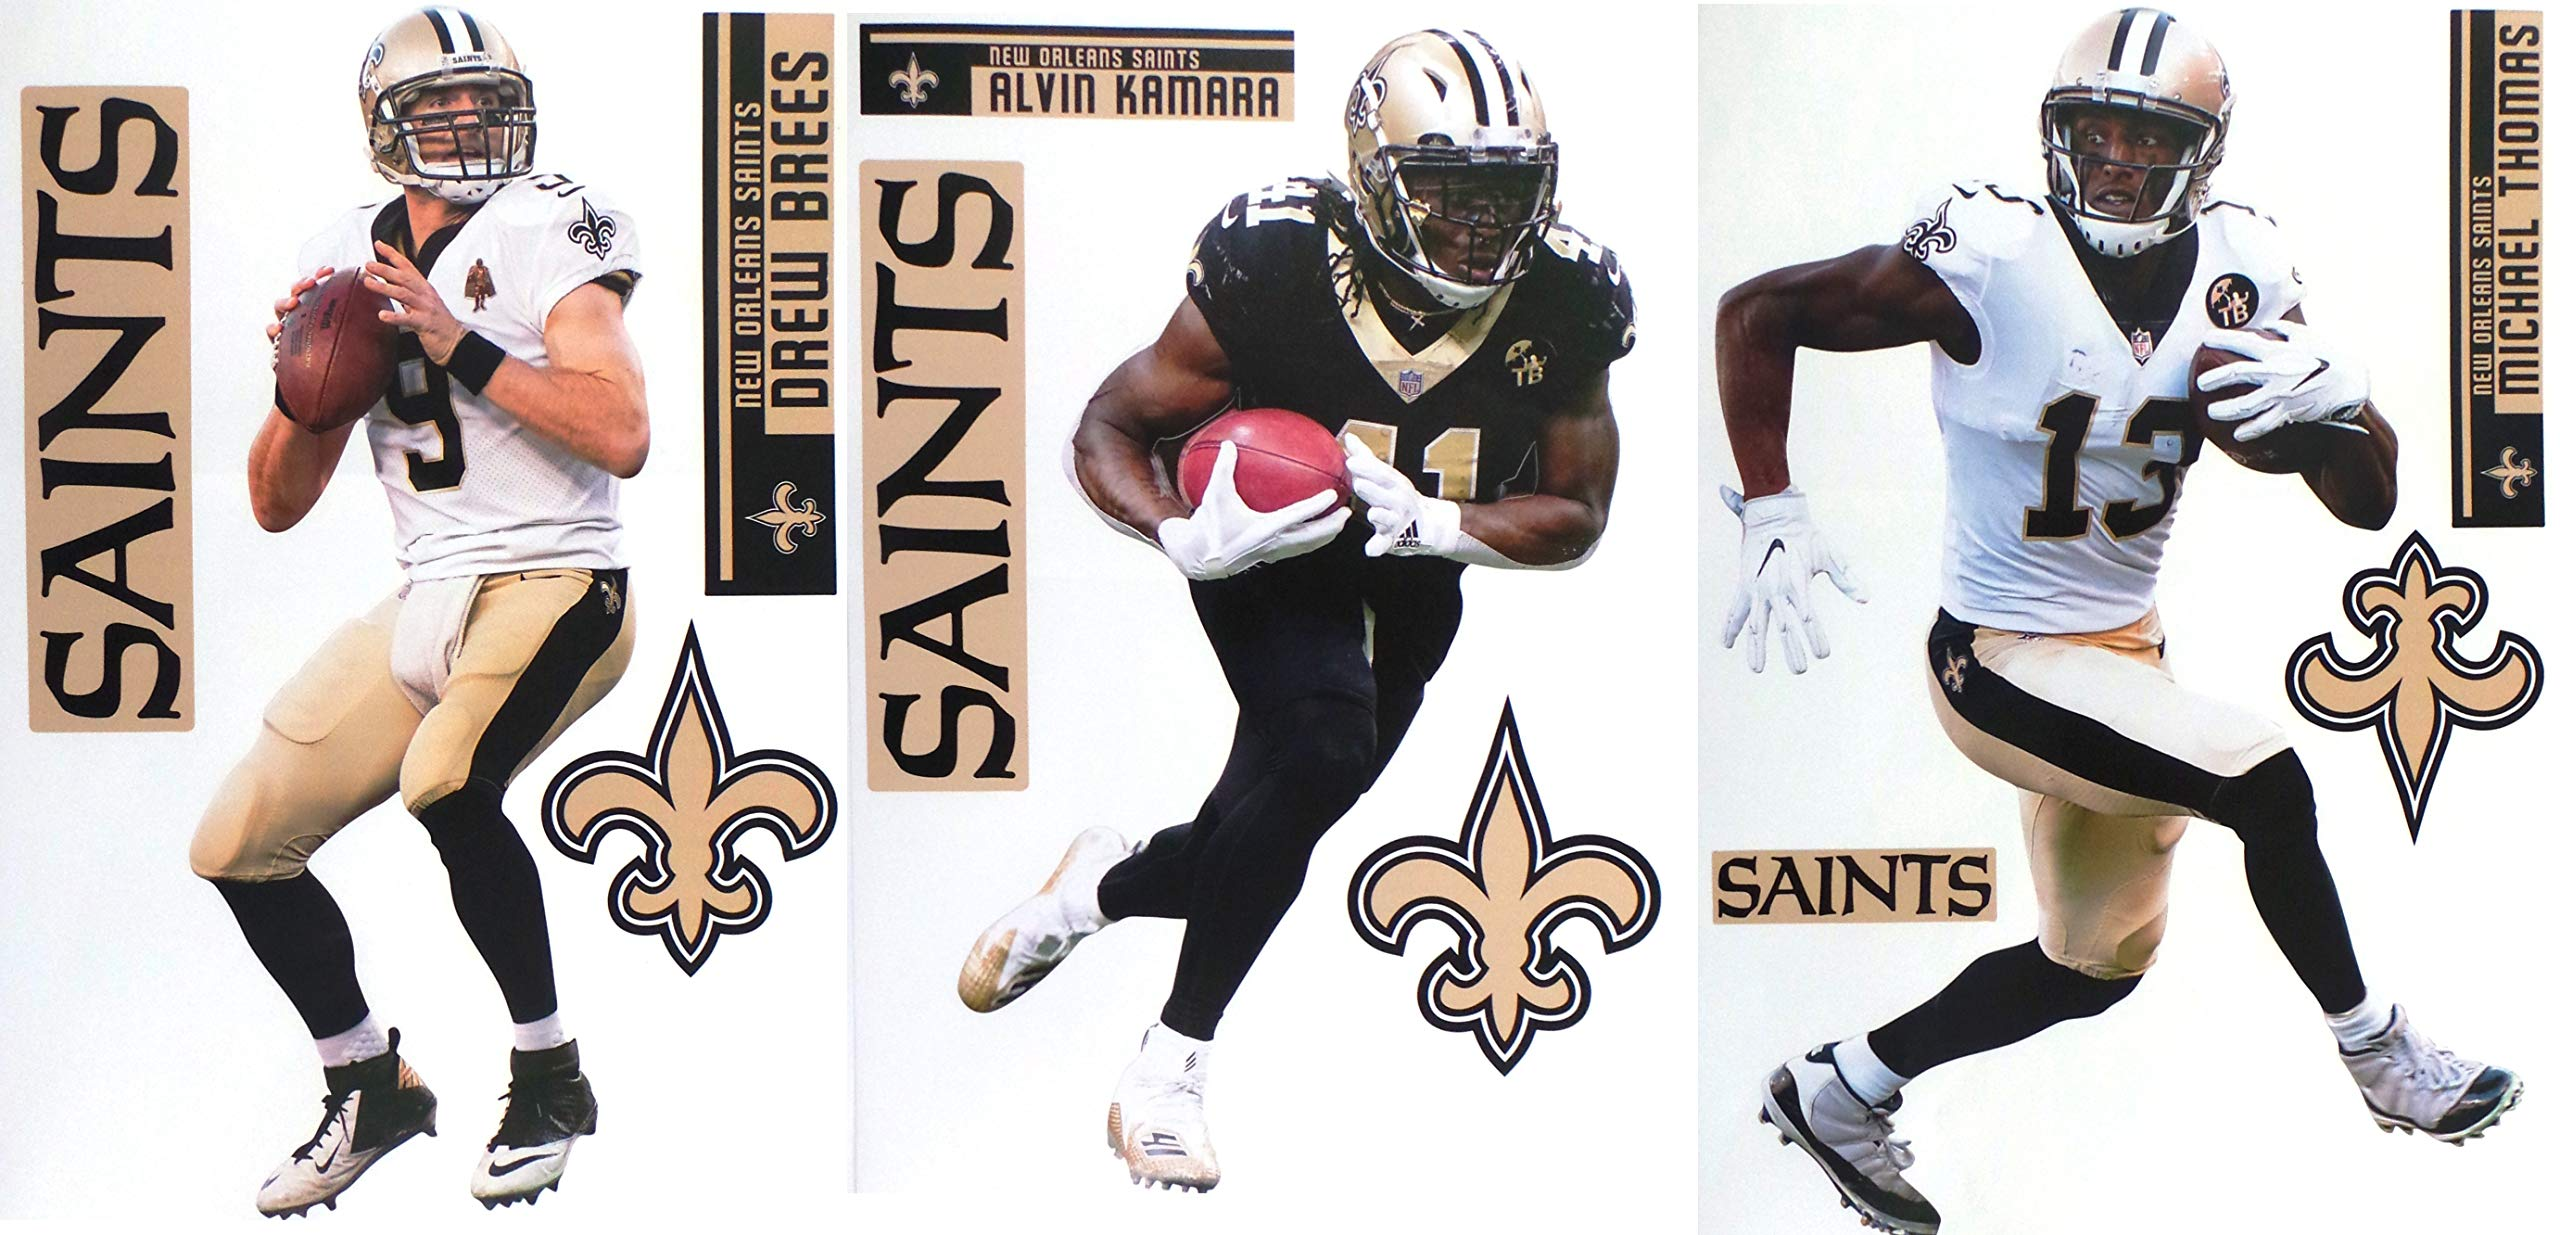 FATHEAD New Orleans Saints Collection 3 Players + Saints Logo Sets Official NFL Vinyl Wall Graphics - Each Player Graphic 17'' INCH - Brees, Kamara, Thomas by FATHEAD